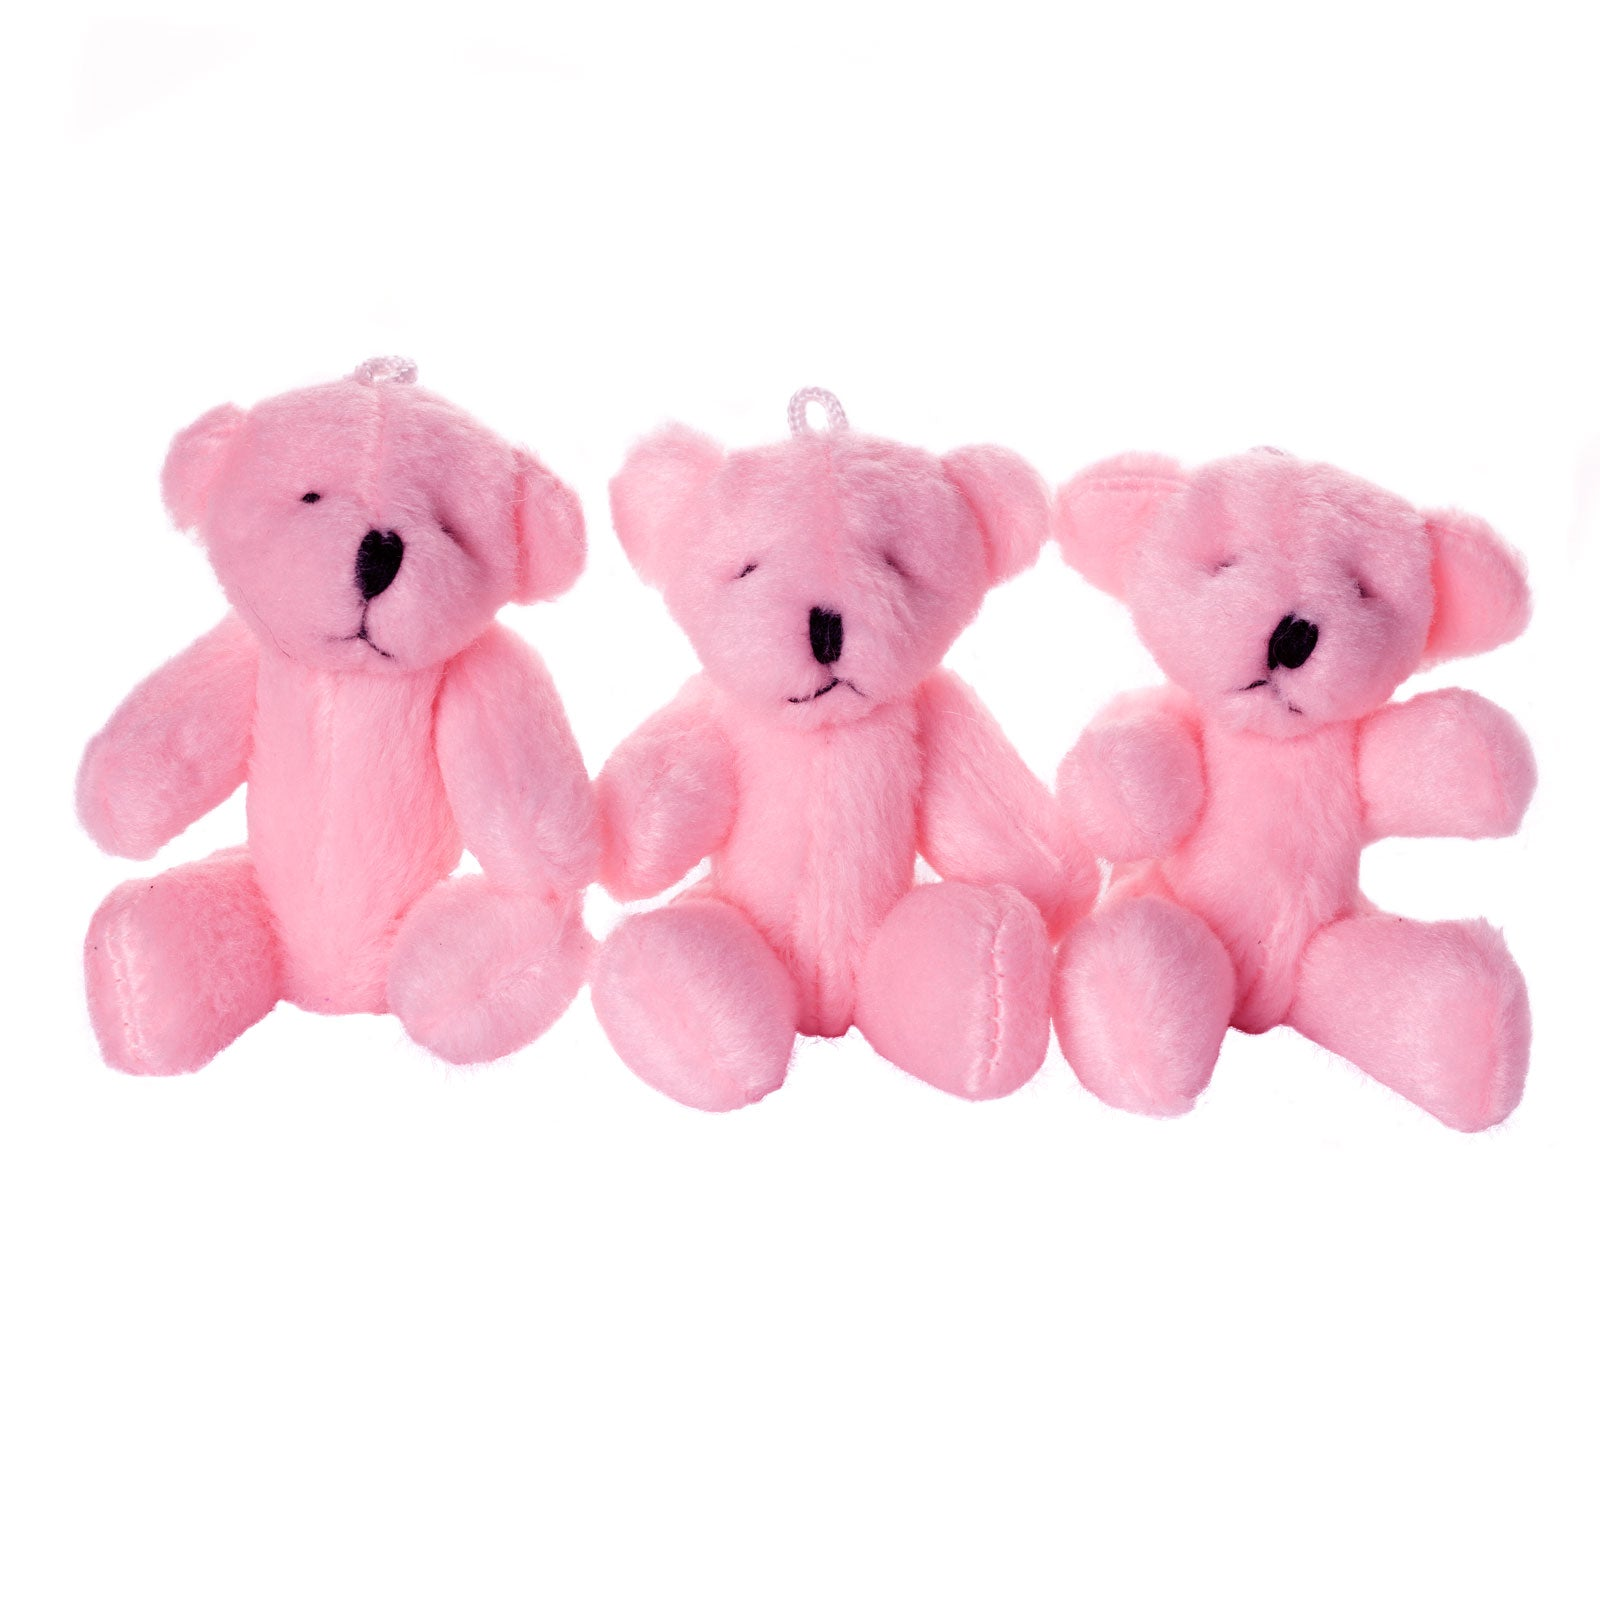 Small PINK Teddy Bears X 60 - Cute Soft Adorable